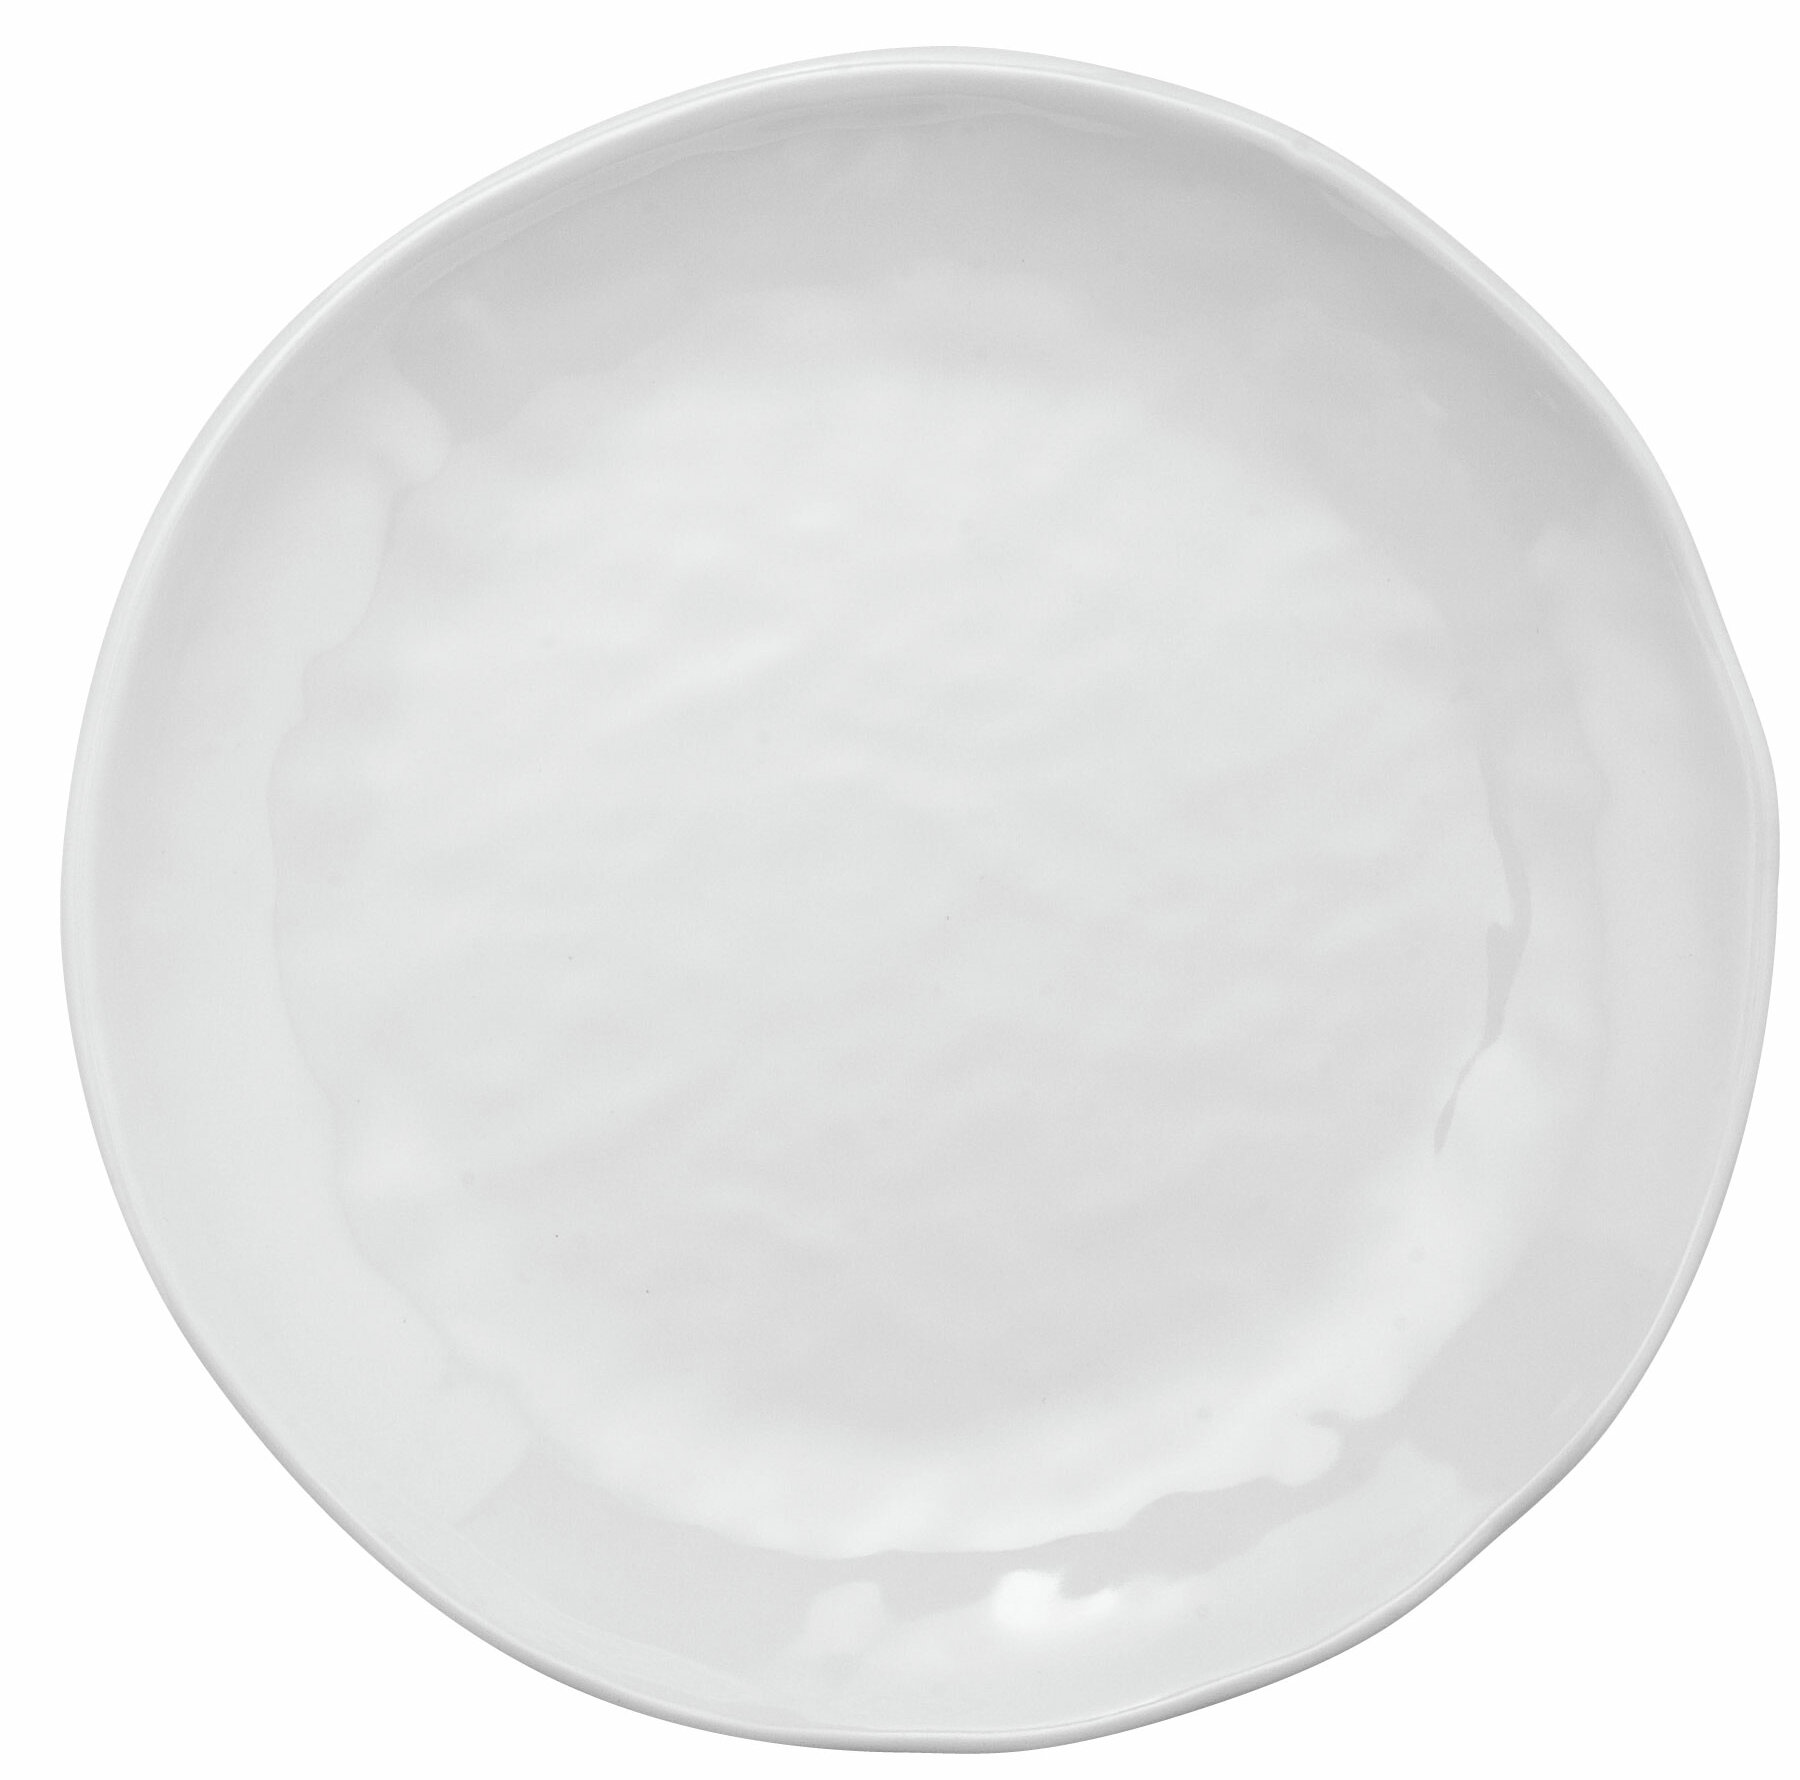 August Grove Tulley 6 Melamine Bread And Butter Plate Wayfair